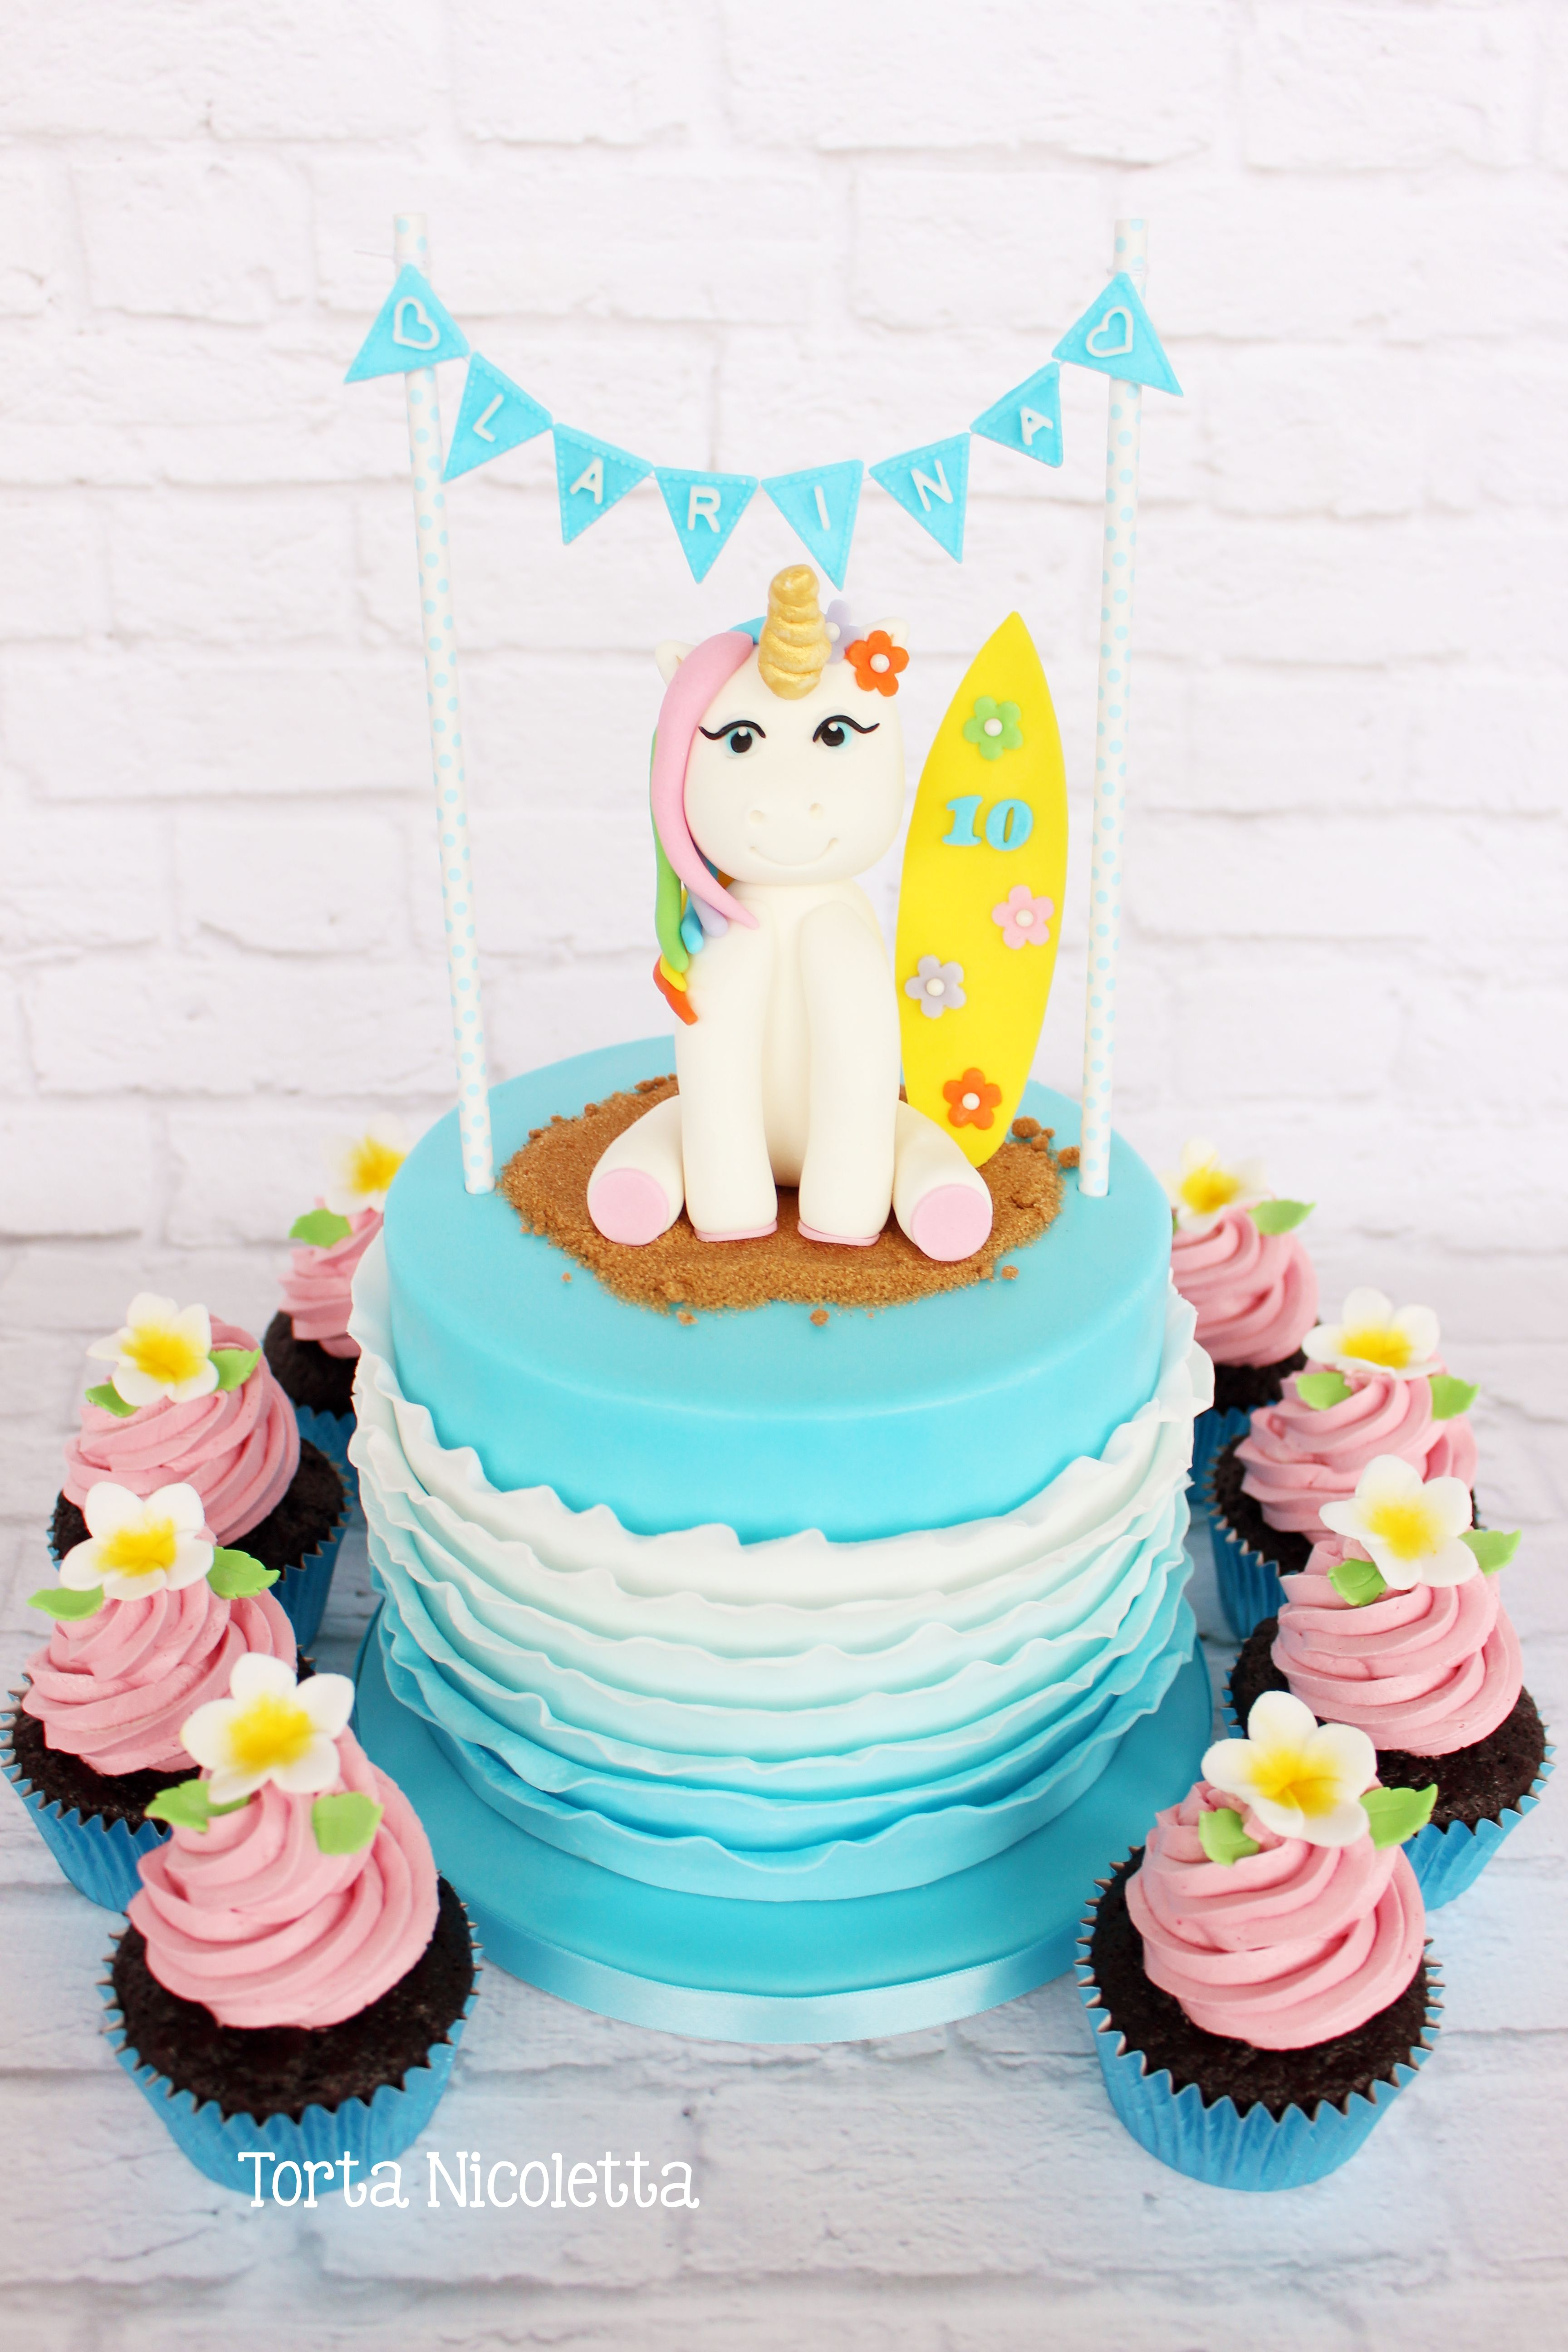 Surfing Unicorn Cake Unicorn Cake Unicorn Cake Decorations Unicorn Birthday Cake